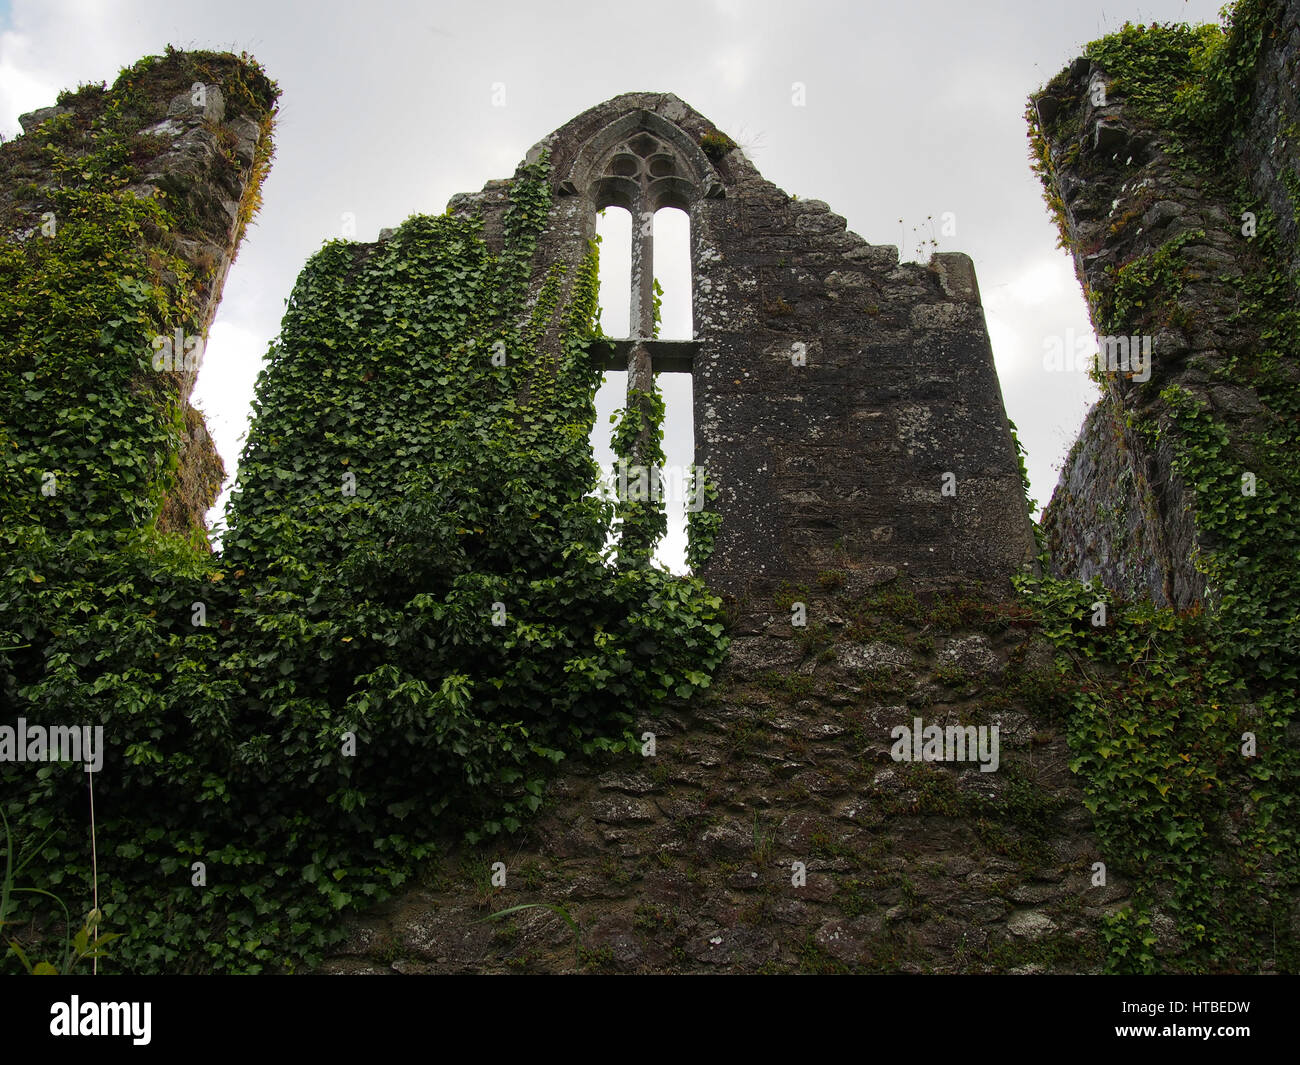 A window in ruins overgrown with ivy at Bridgetown Priory outside of Castletownroche in Cork County Ireland. - Stock Image